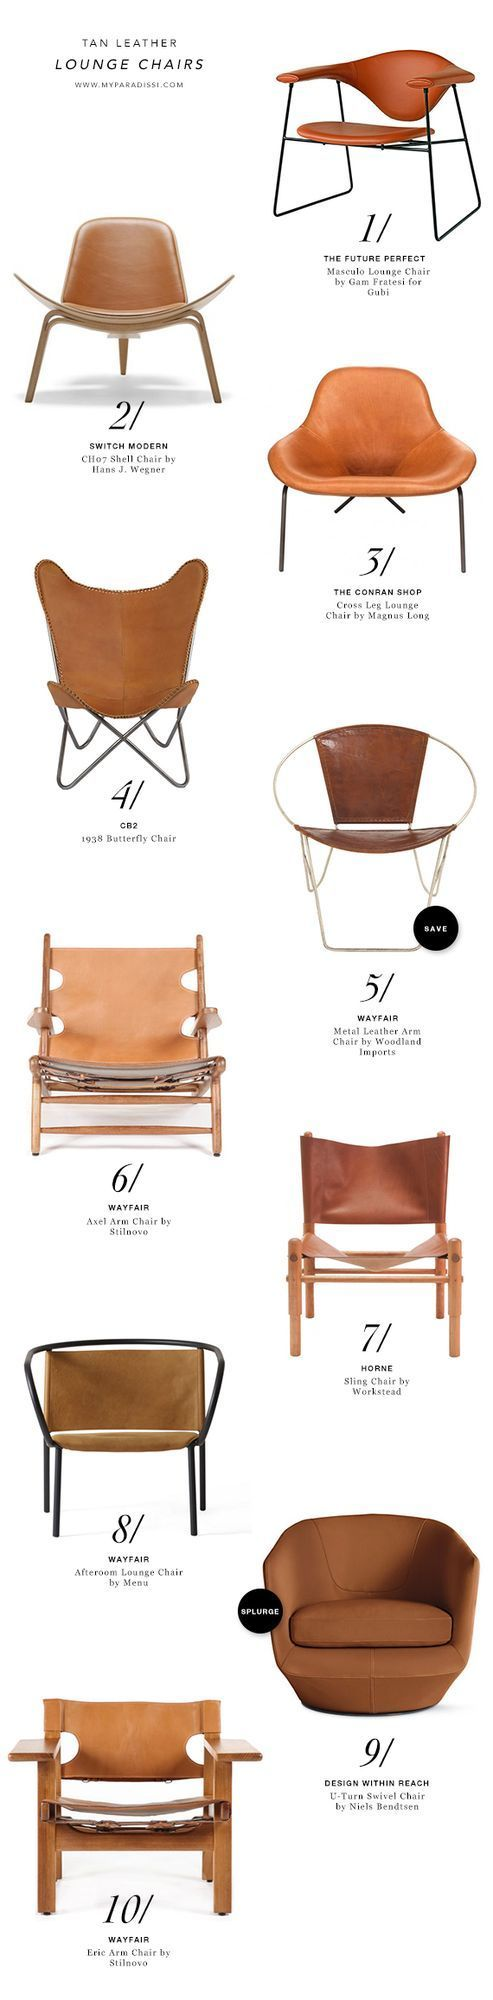 10 BEST: Tan leather lounge chairs: